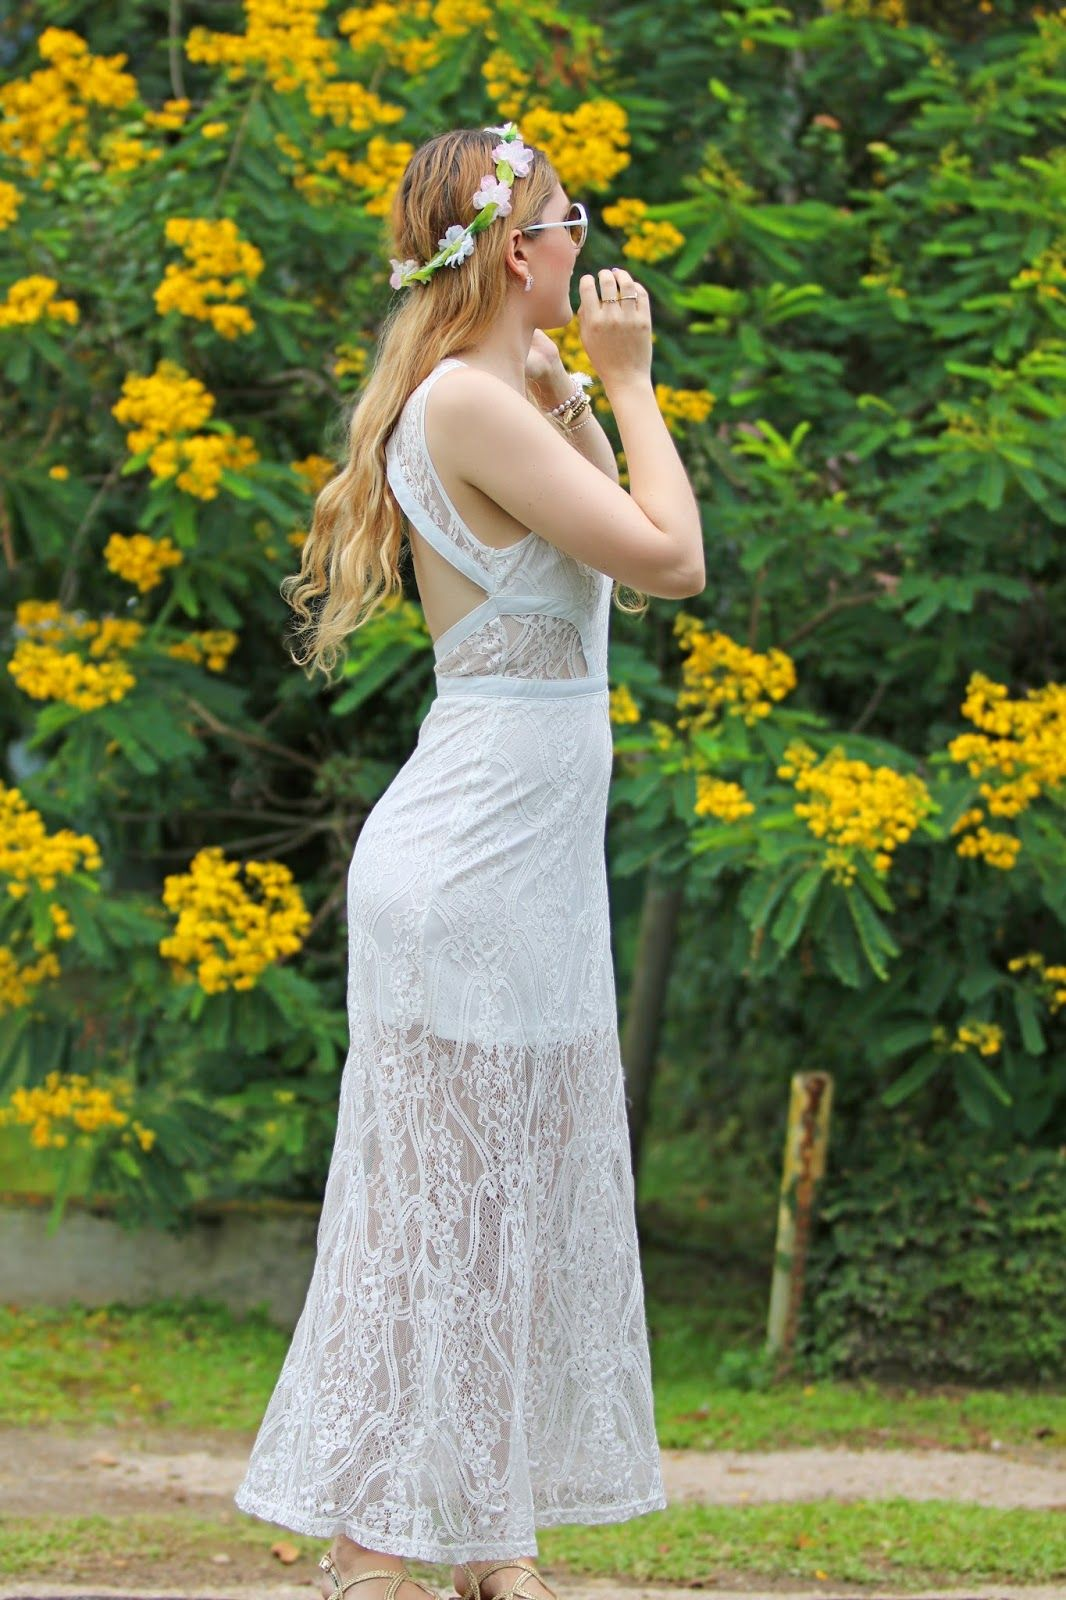 Pretty Flower Crown Outfit Wedding Pinterest Flower Crown